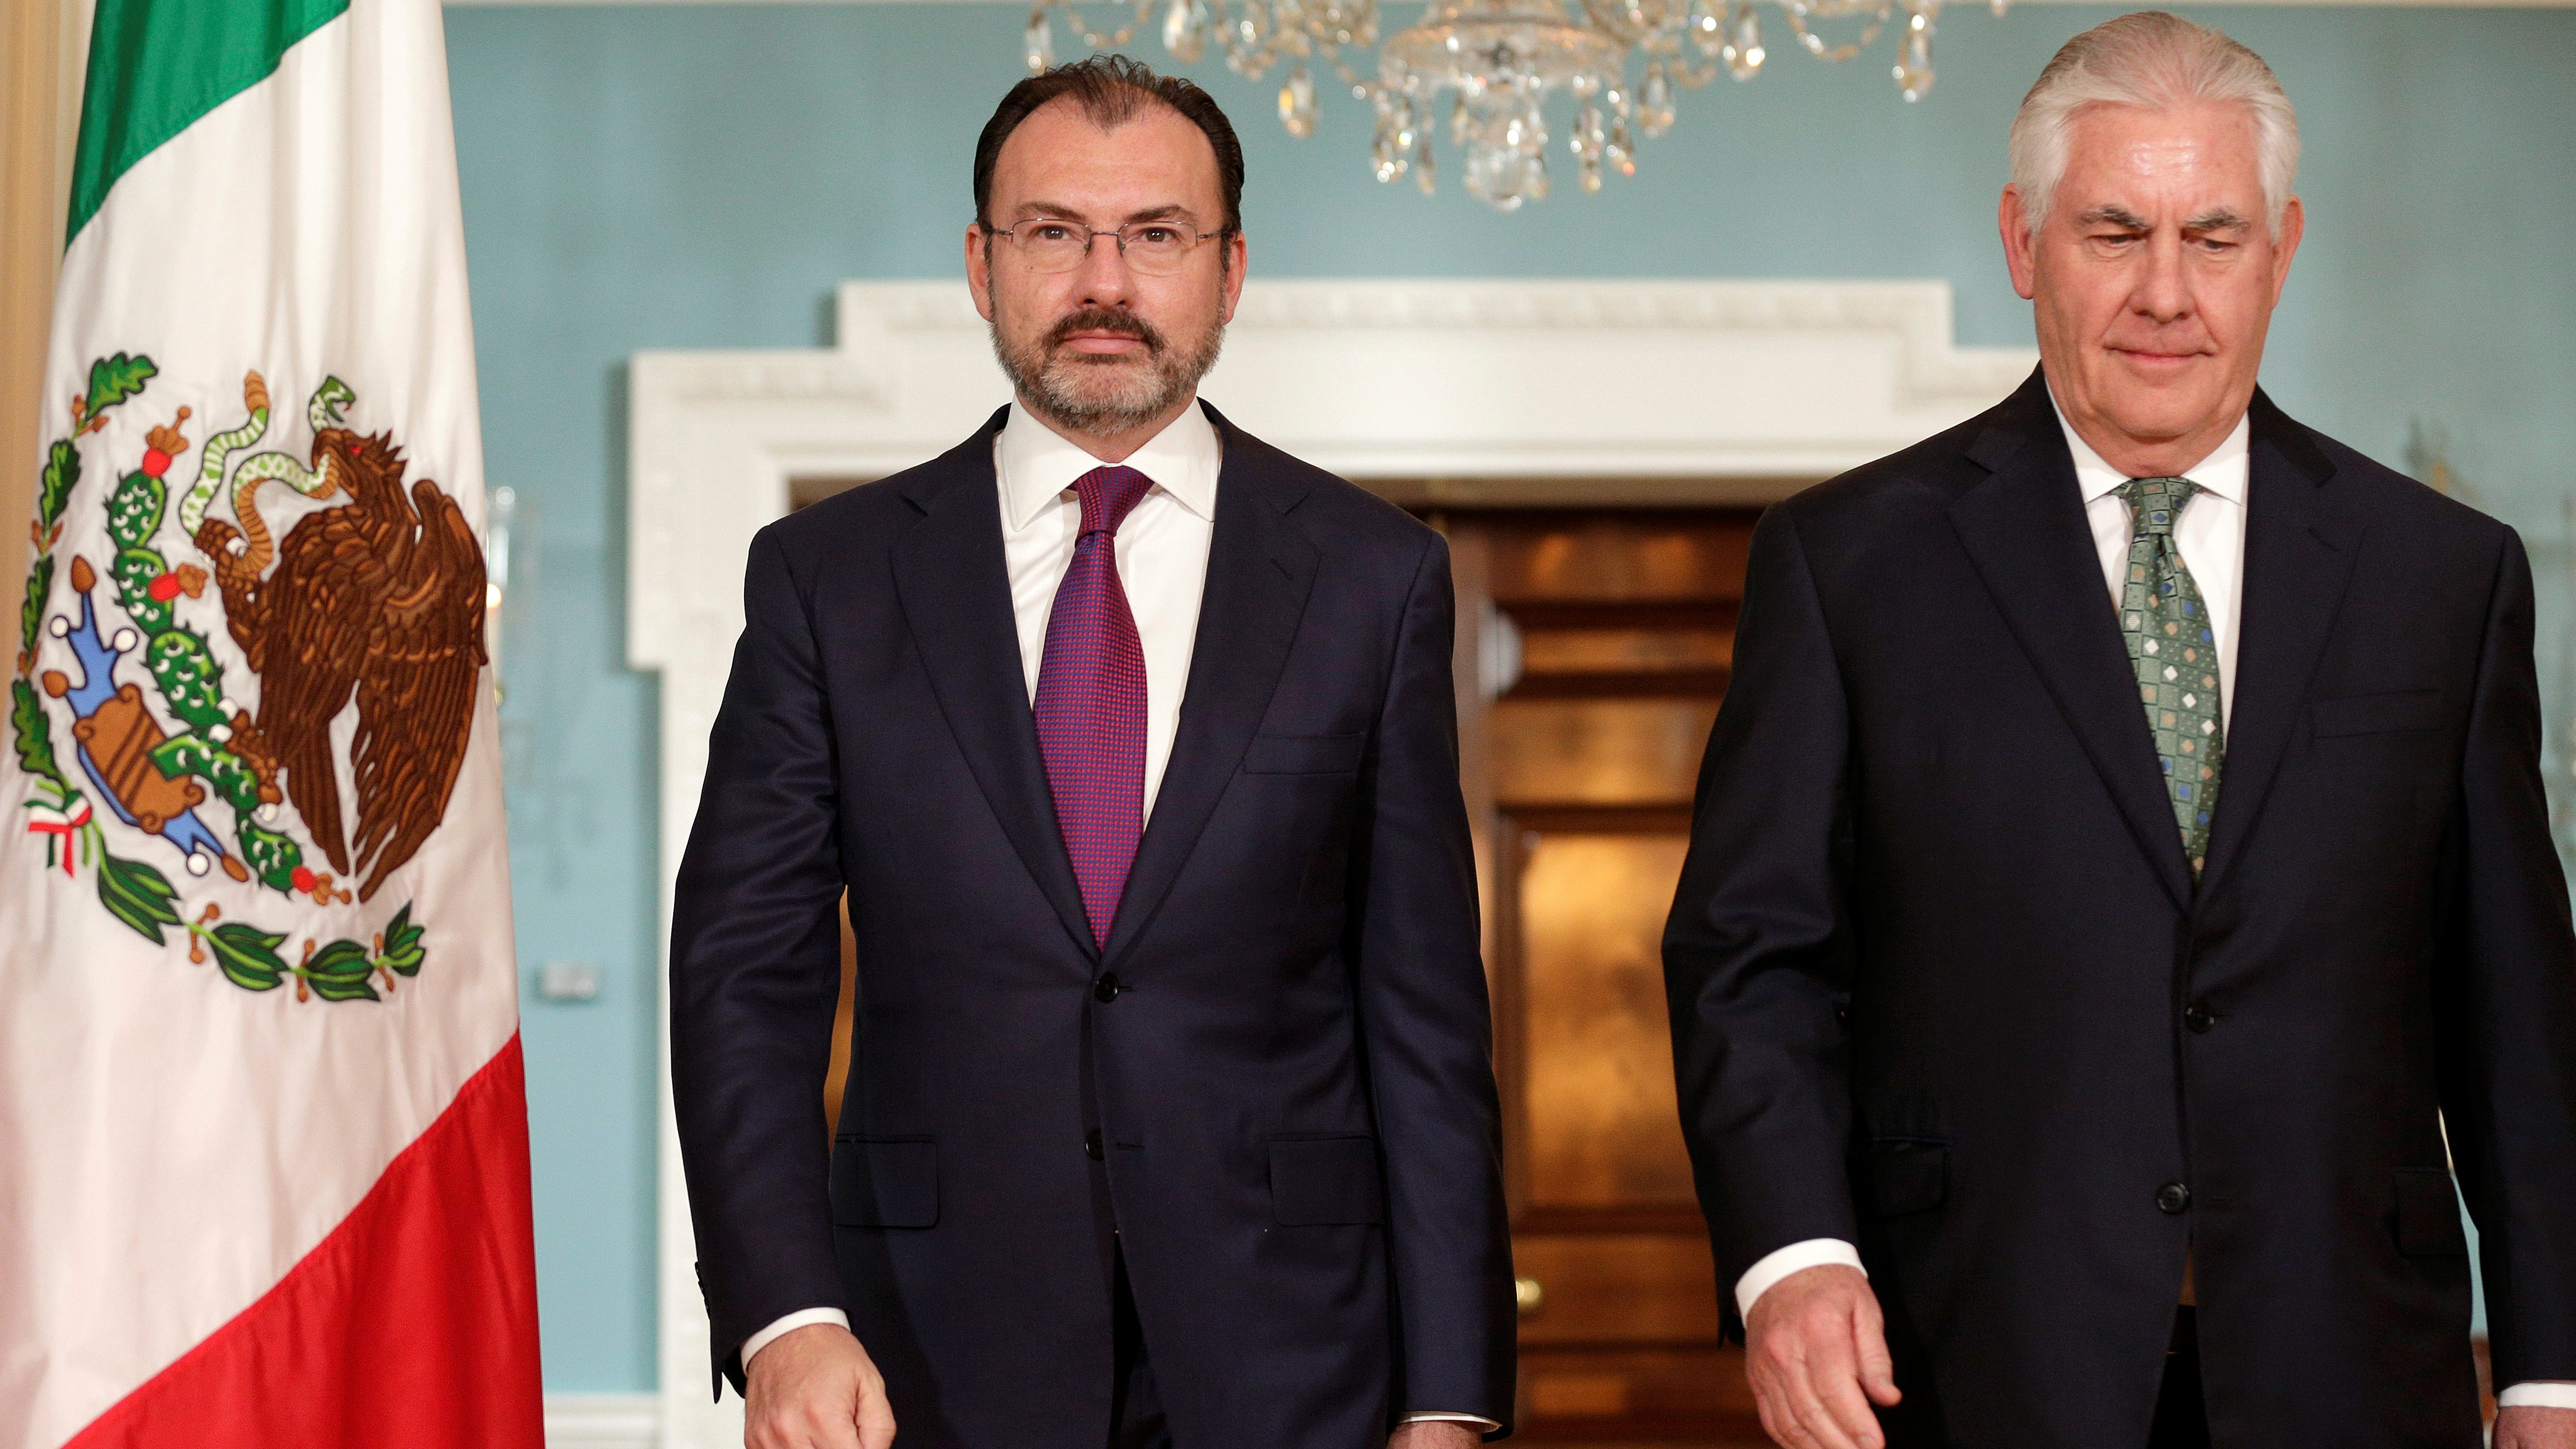 US Secretary of State Rex Tillerson and Mexican Foreign Minister Luis Videgaray